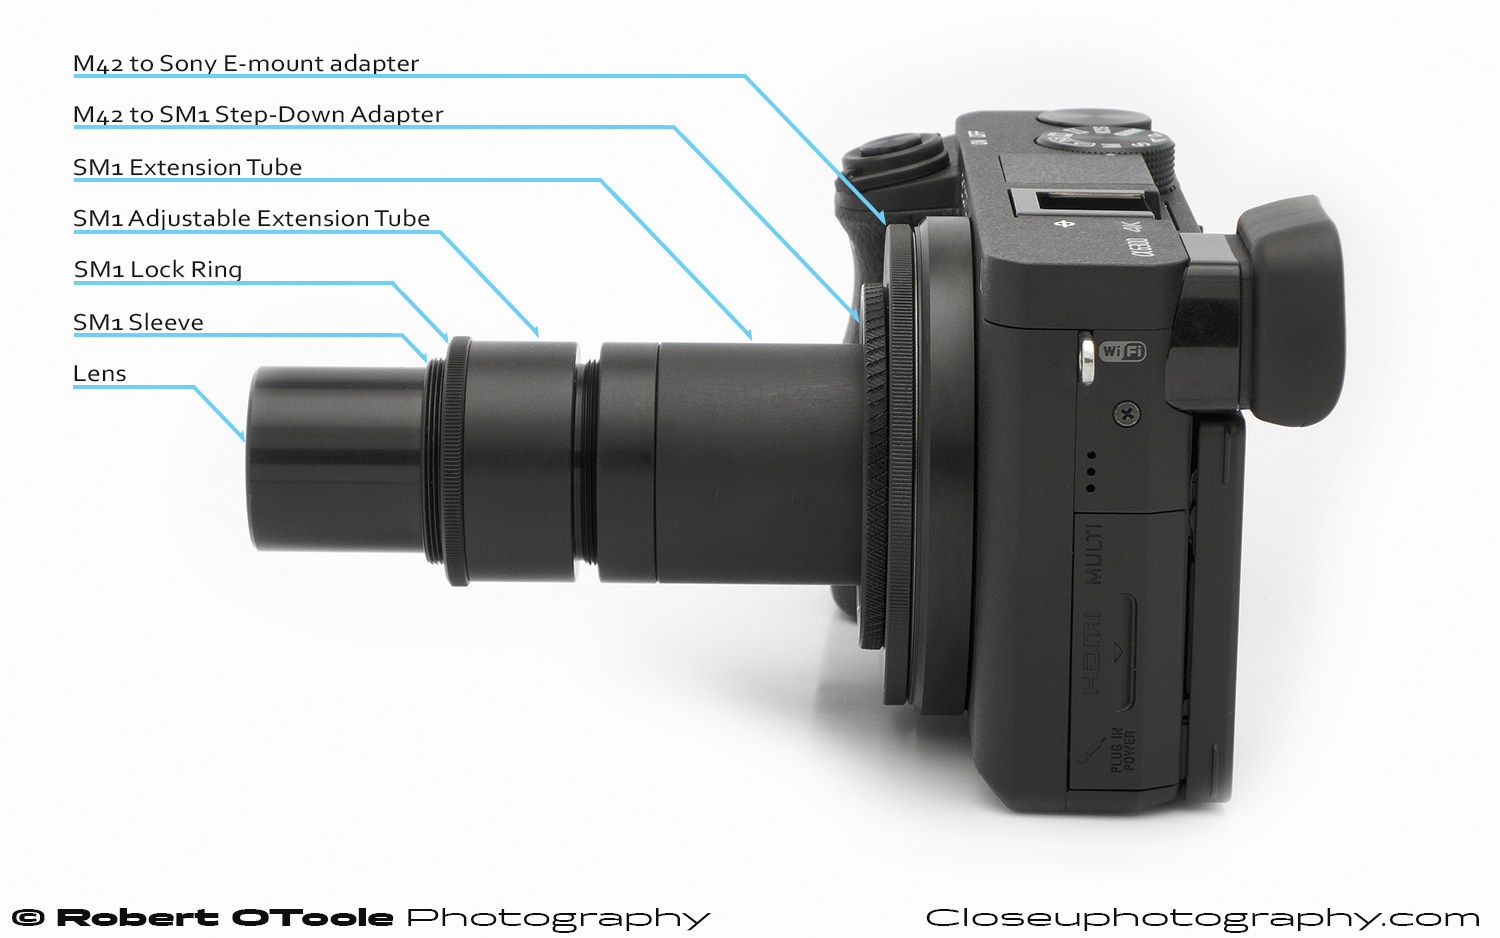 Tominon-26.9mm-lens-with-Sony-A6300-with-labels-Closeuphotography-Robert-OToole-Photography.jpg